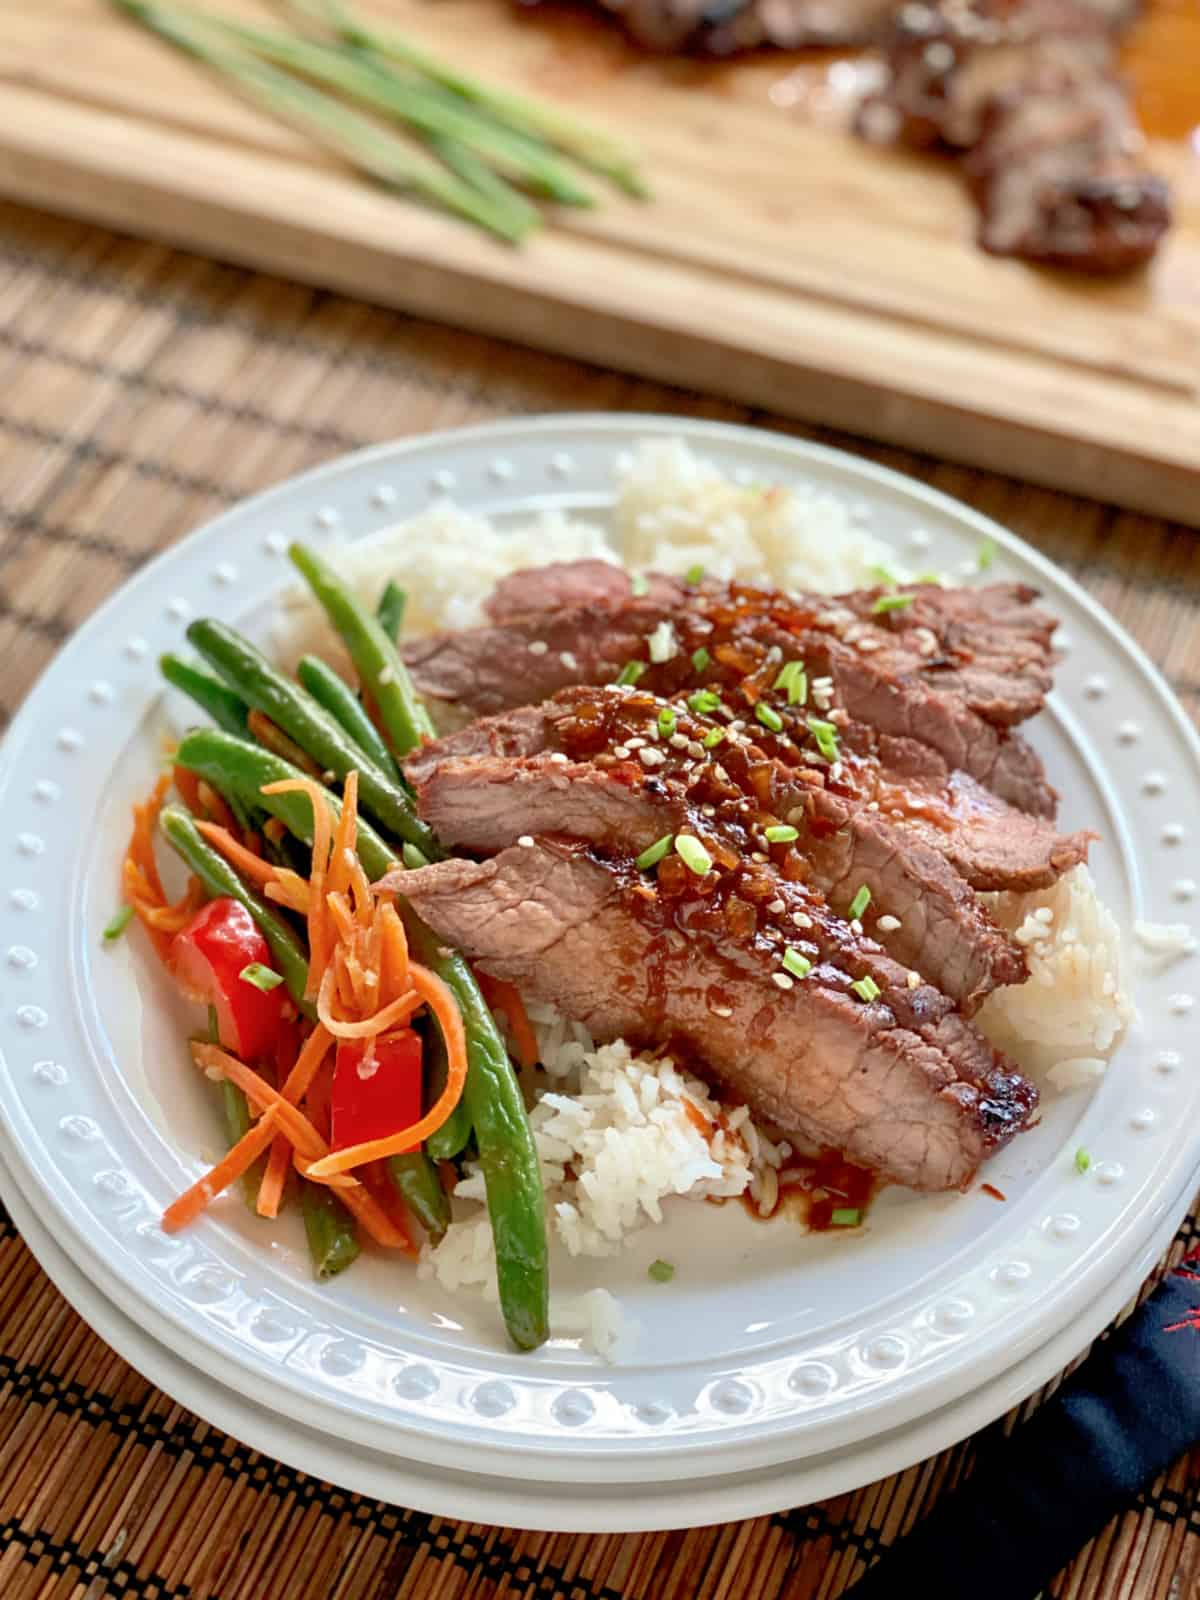 White plate filled with rice, green beansm and sliced asian steak.